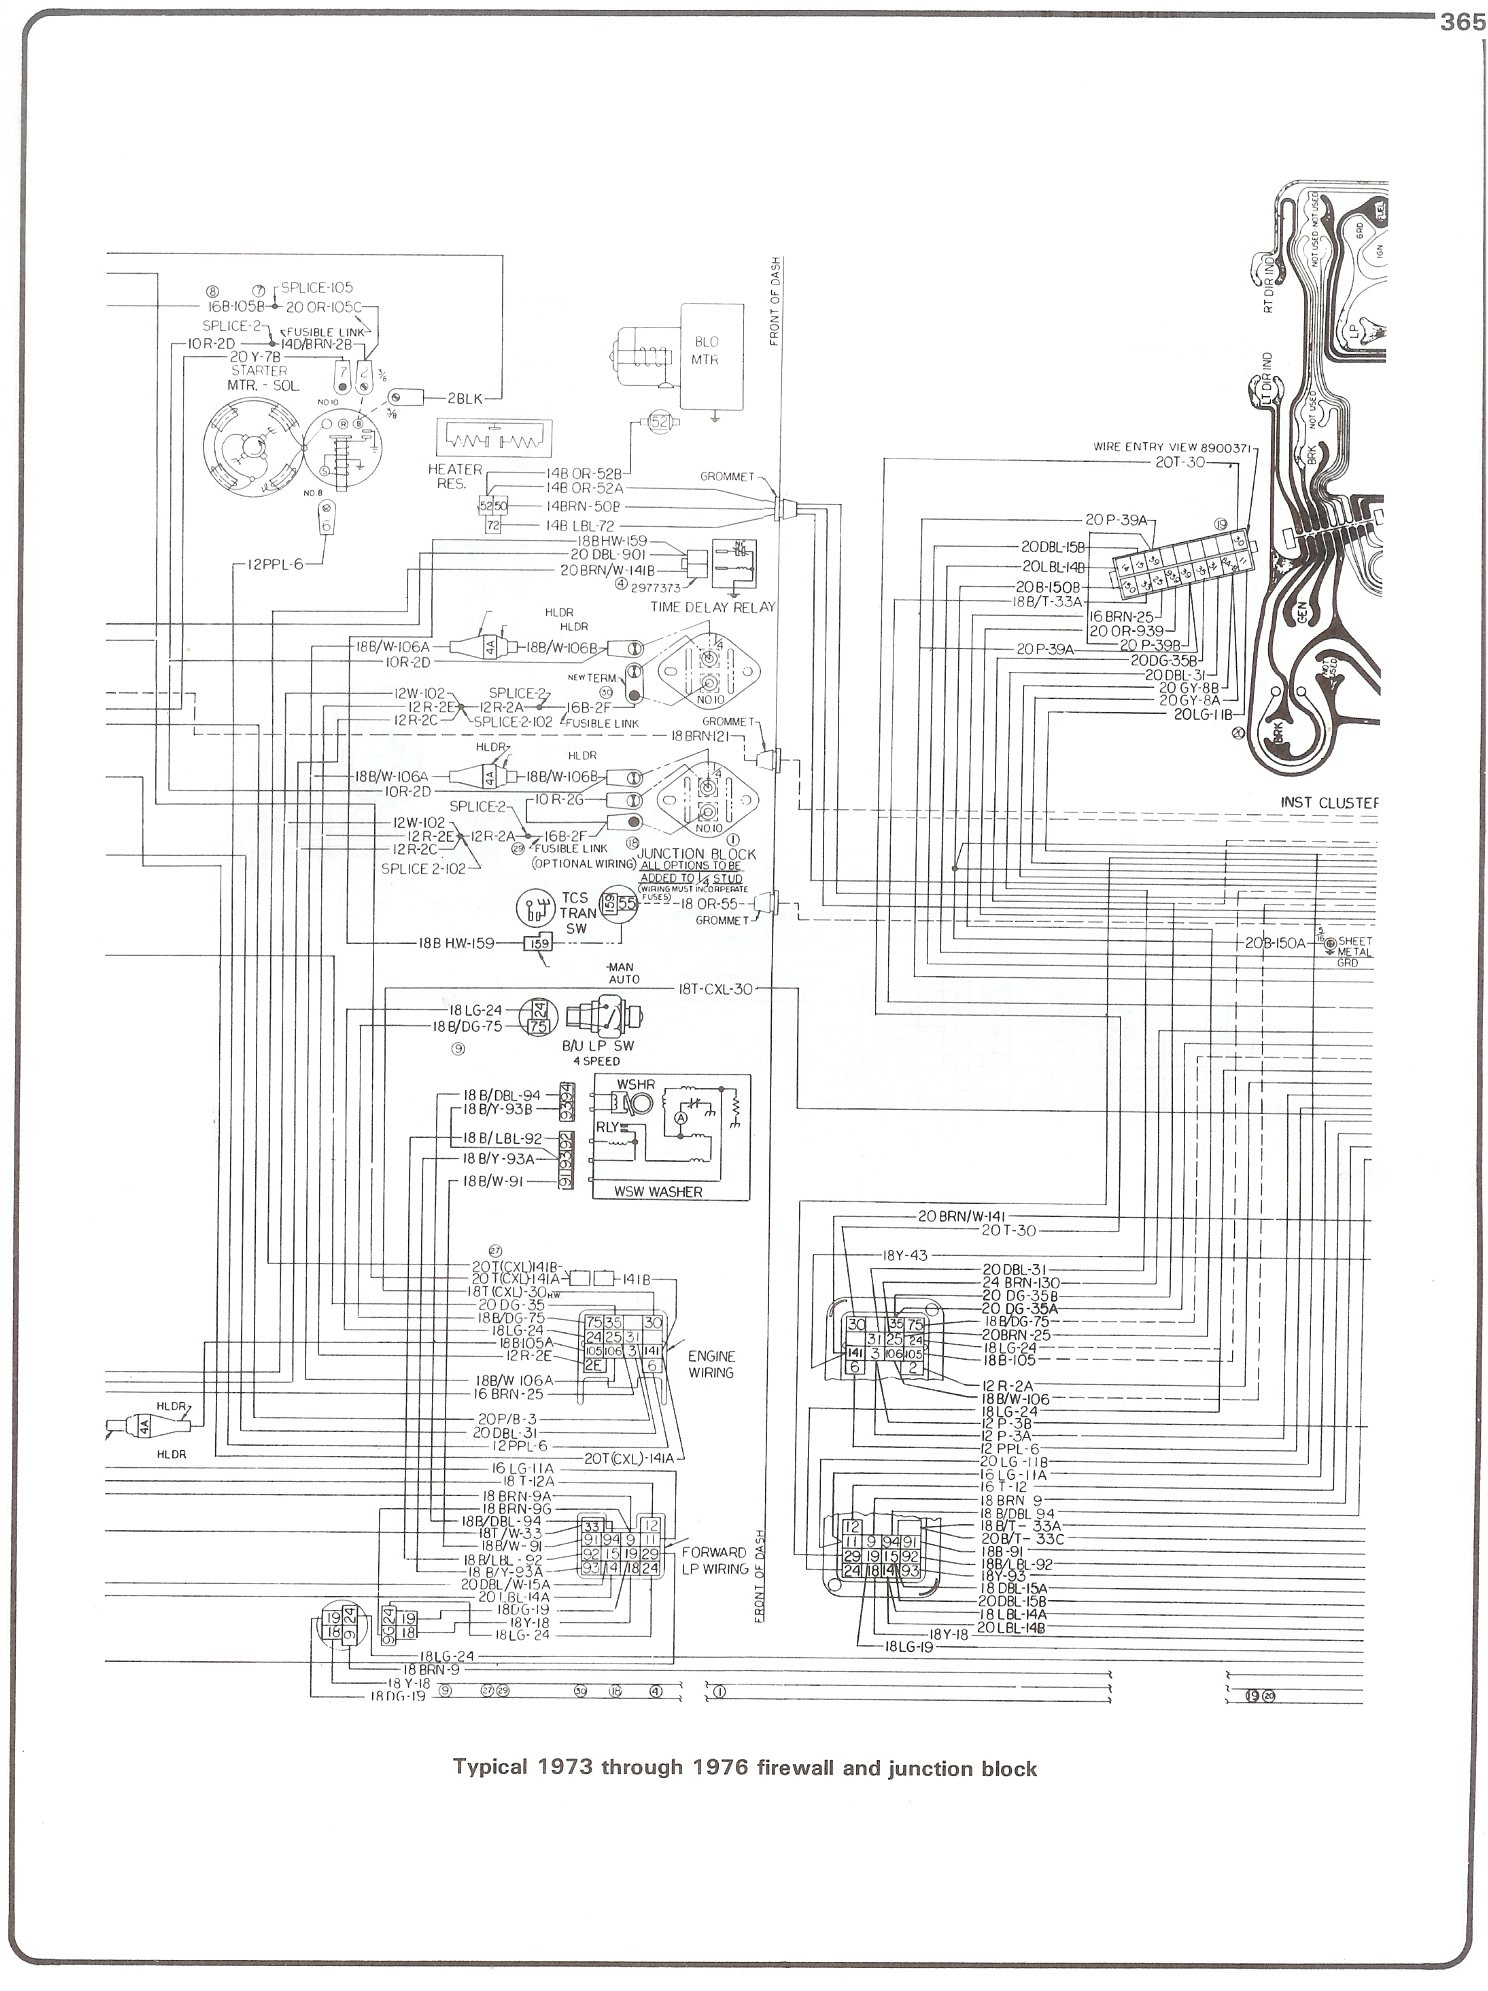 Complete 73 87 Wiring Diagrams 1986 Chevrolet K10 Diagram 76 Firewall Junction